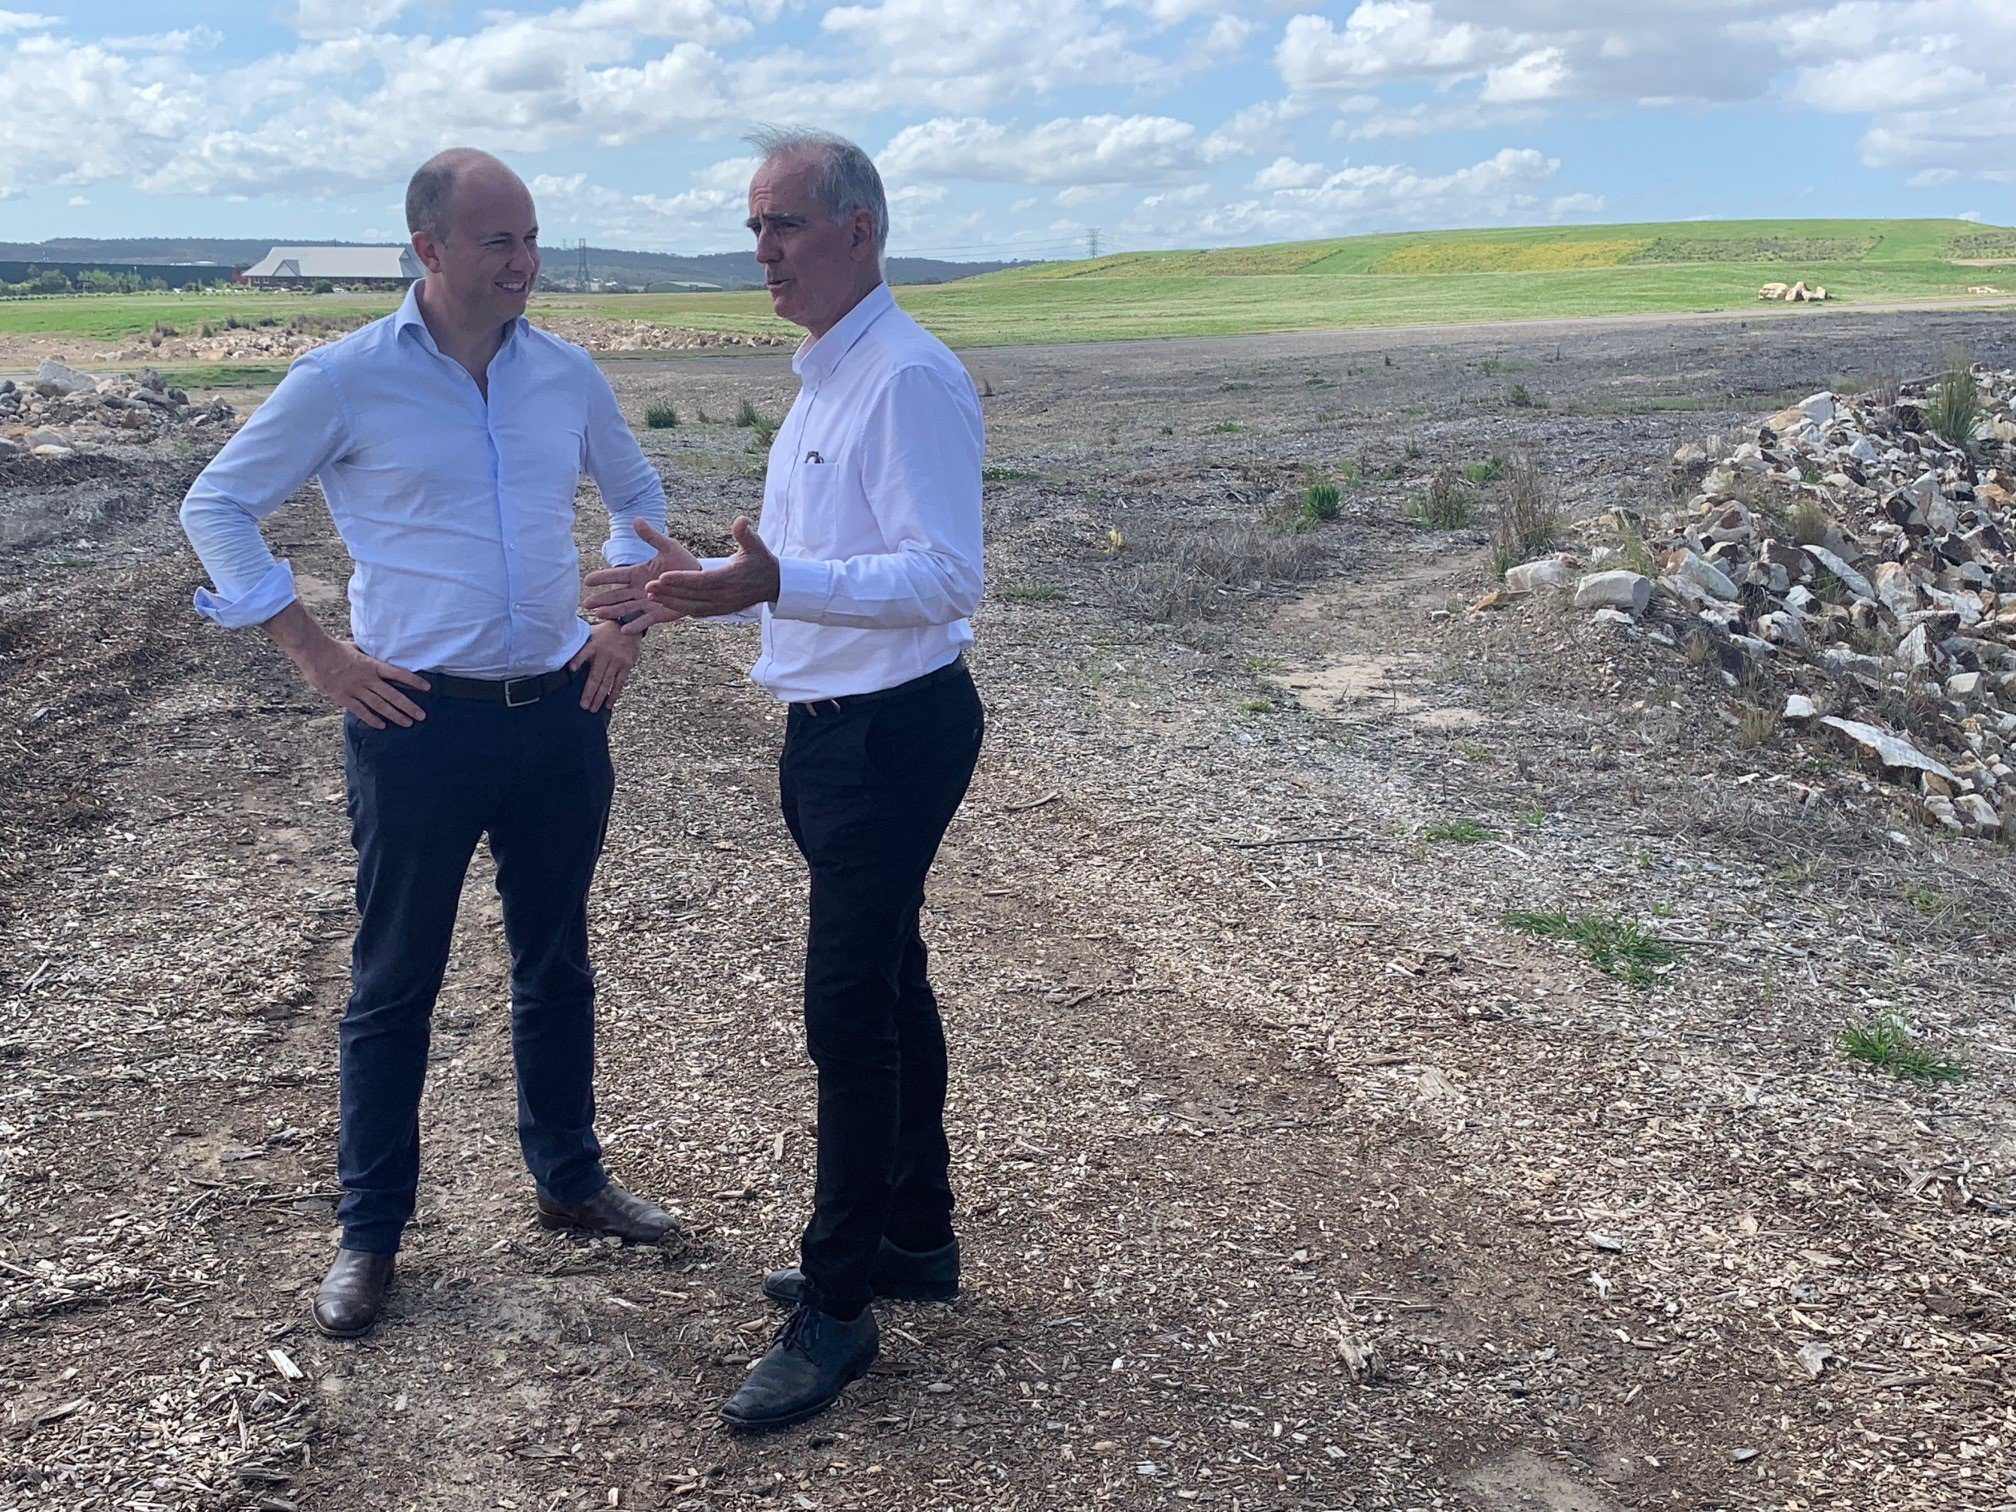 A sensible outcome for the disposal of contaminated soil at Boolaroo has finally been decided. My media release explains the details: